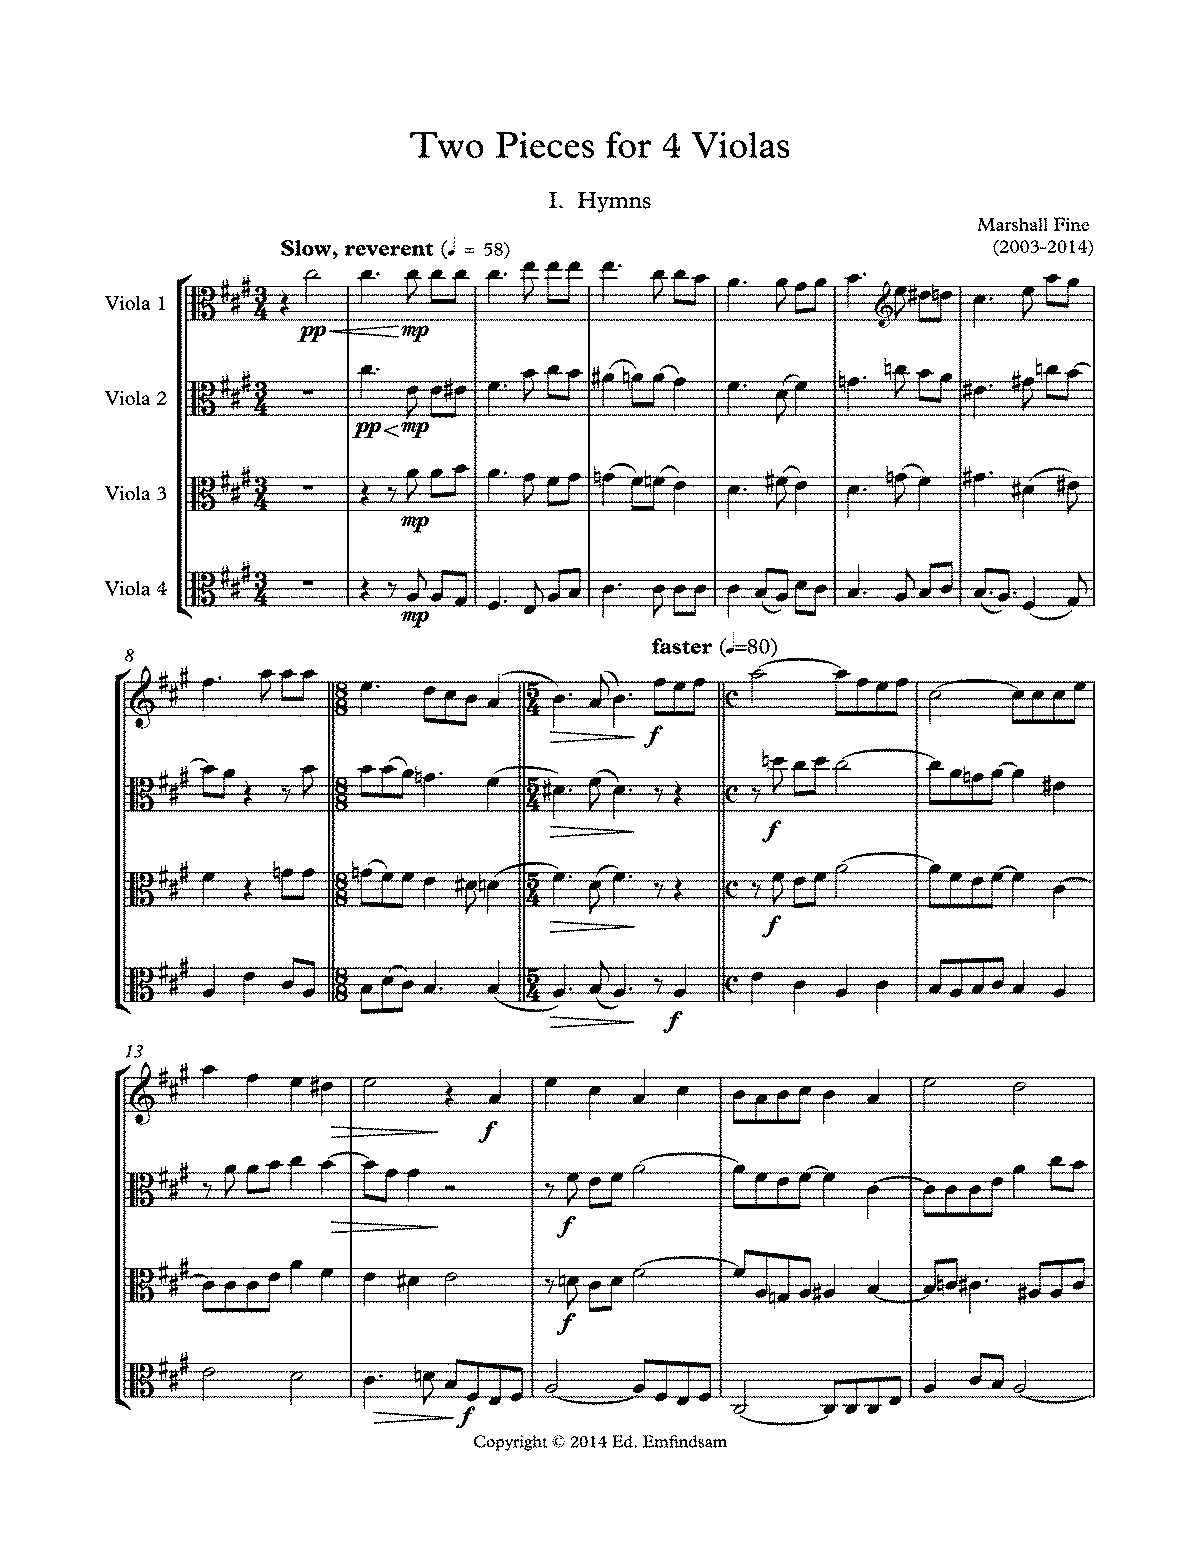 PMLP549488-Two Pieces for 4 Violas - score and parts.pdf